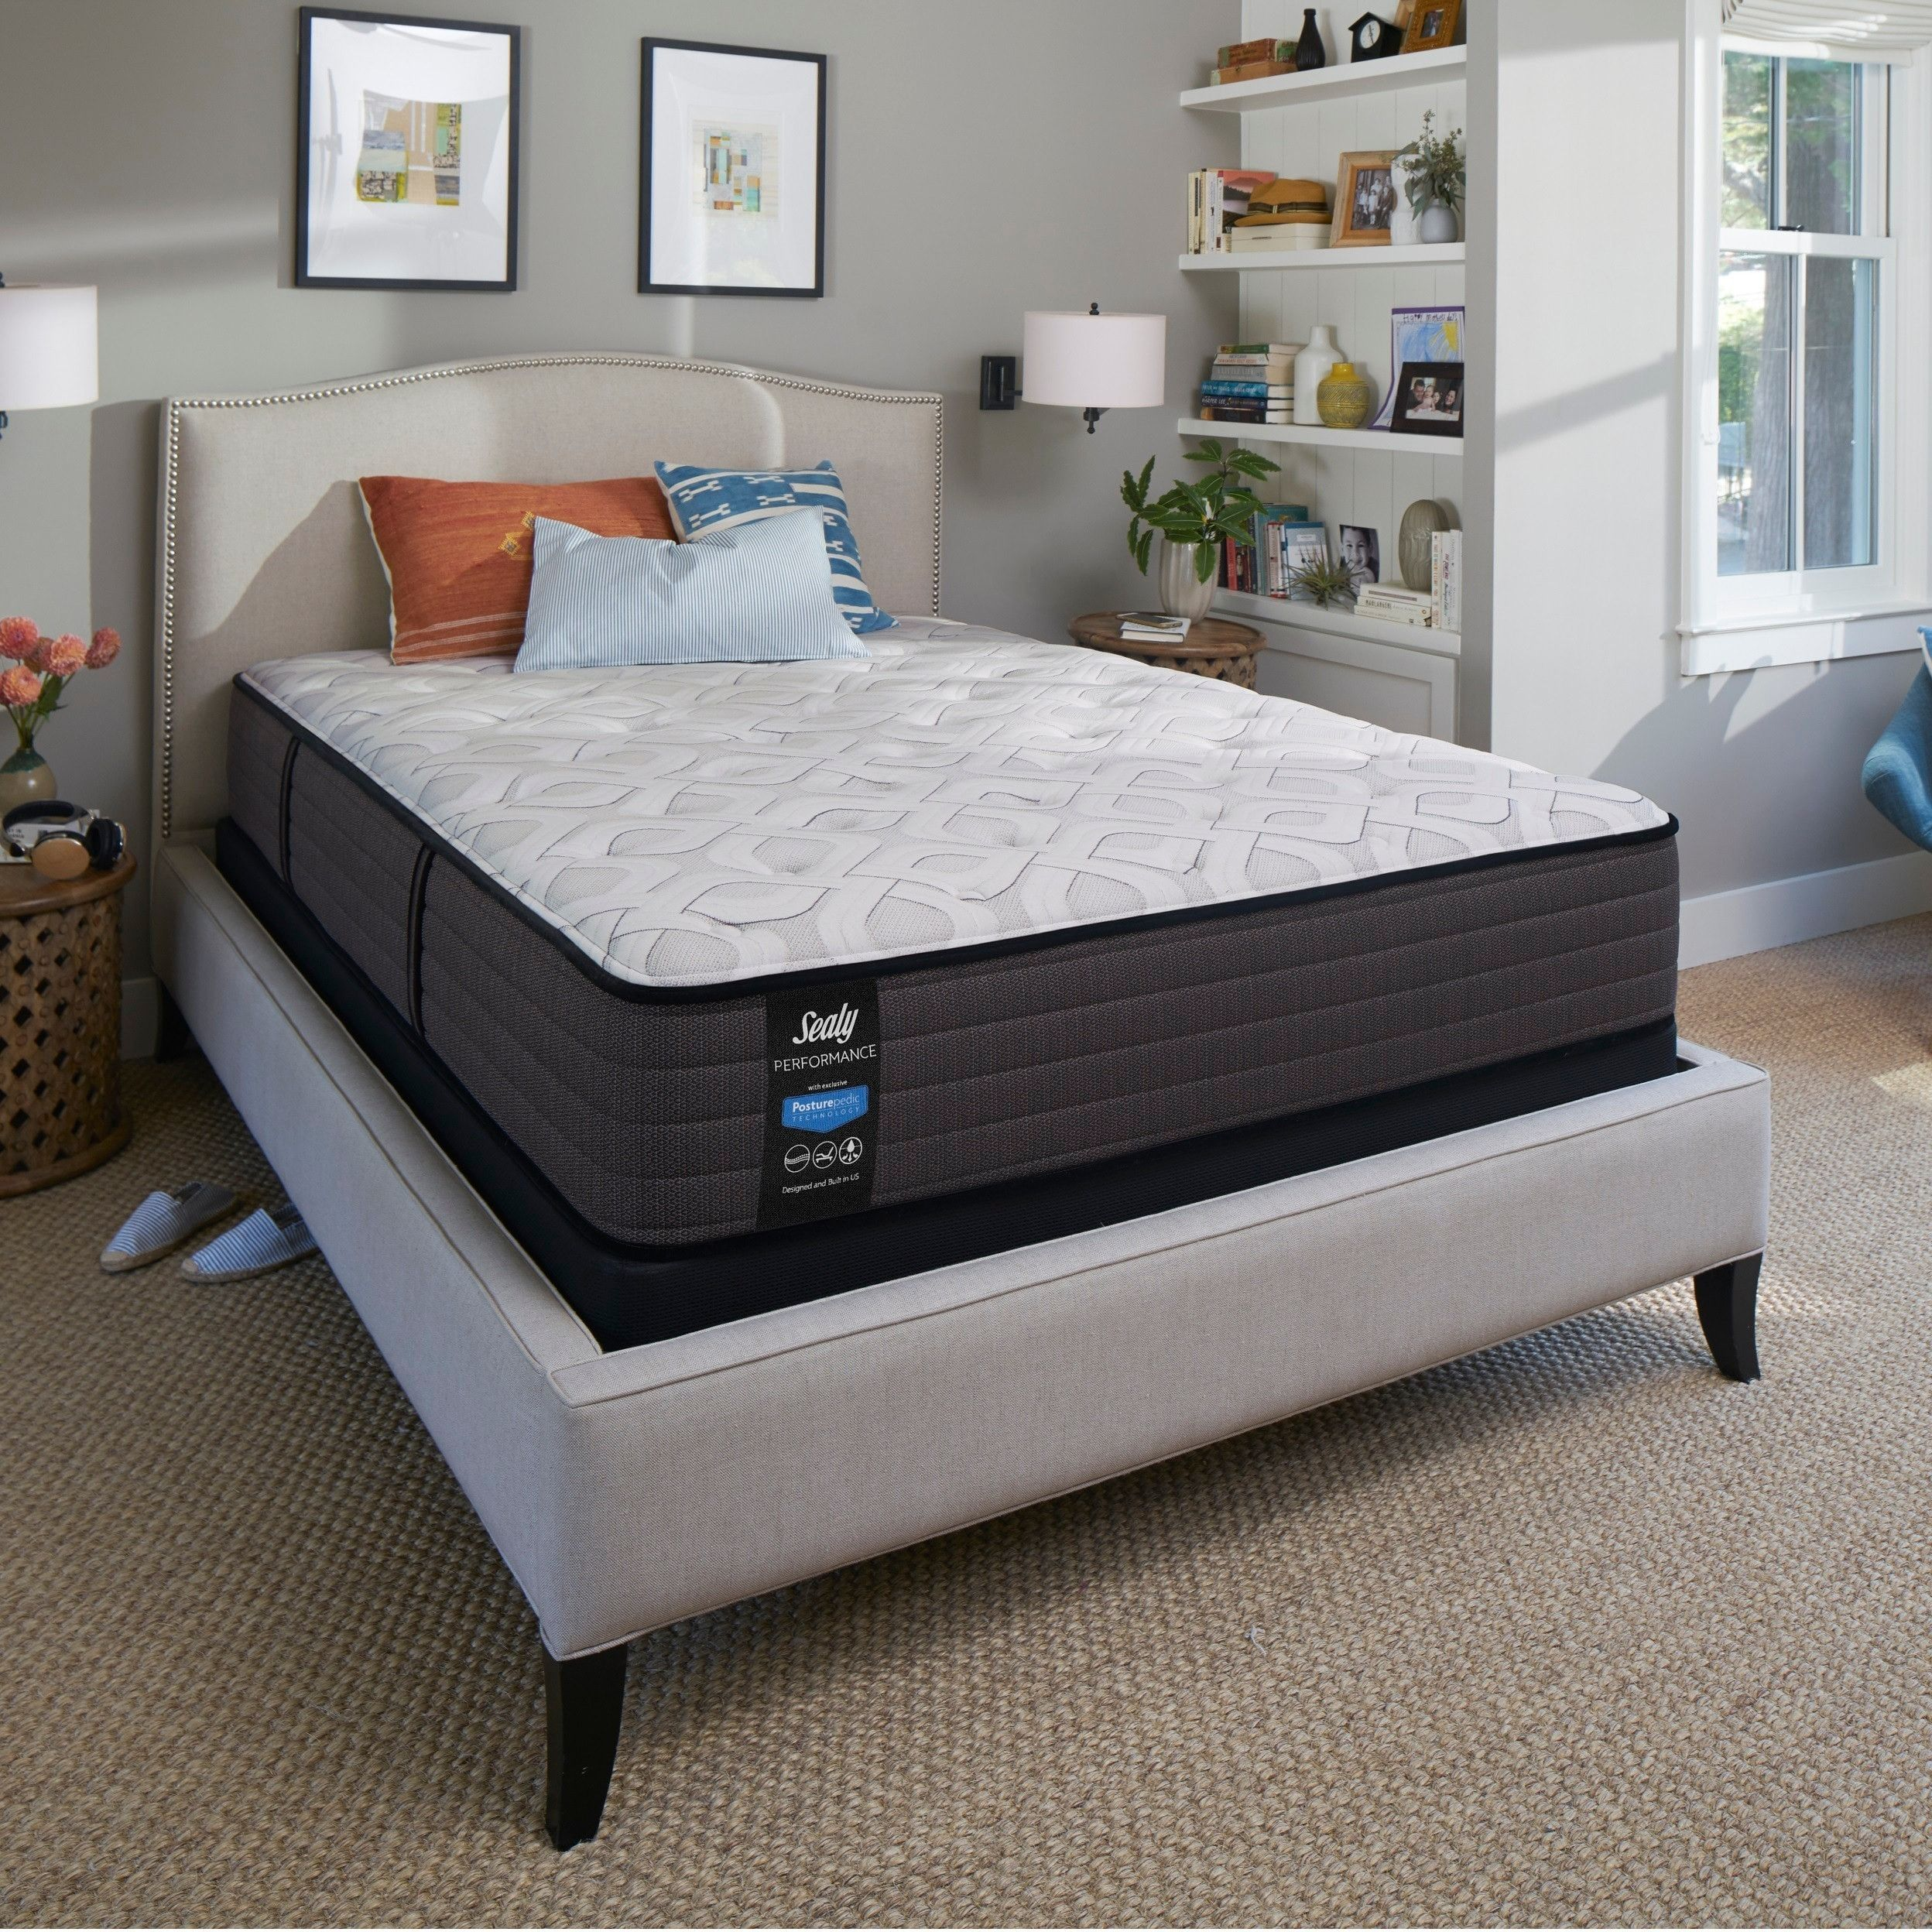 30 Breathtaking Mattress Firm Queen Bed Frame Ideas Mattress Firm